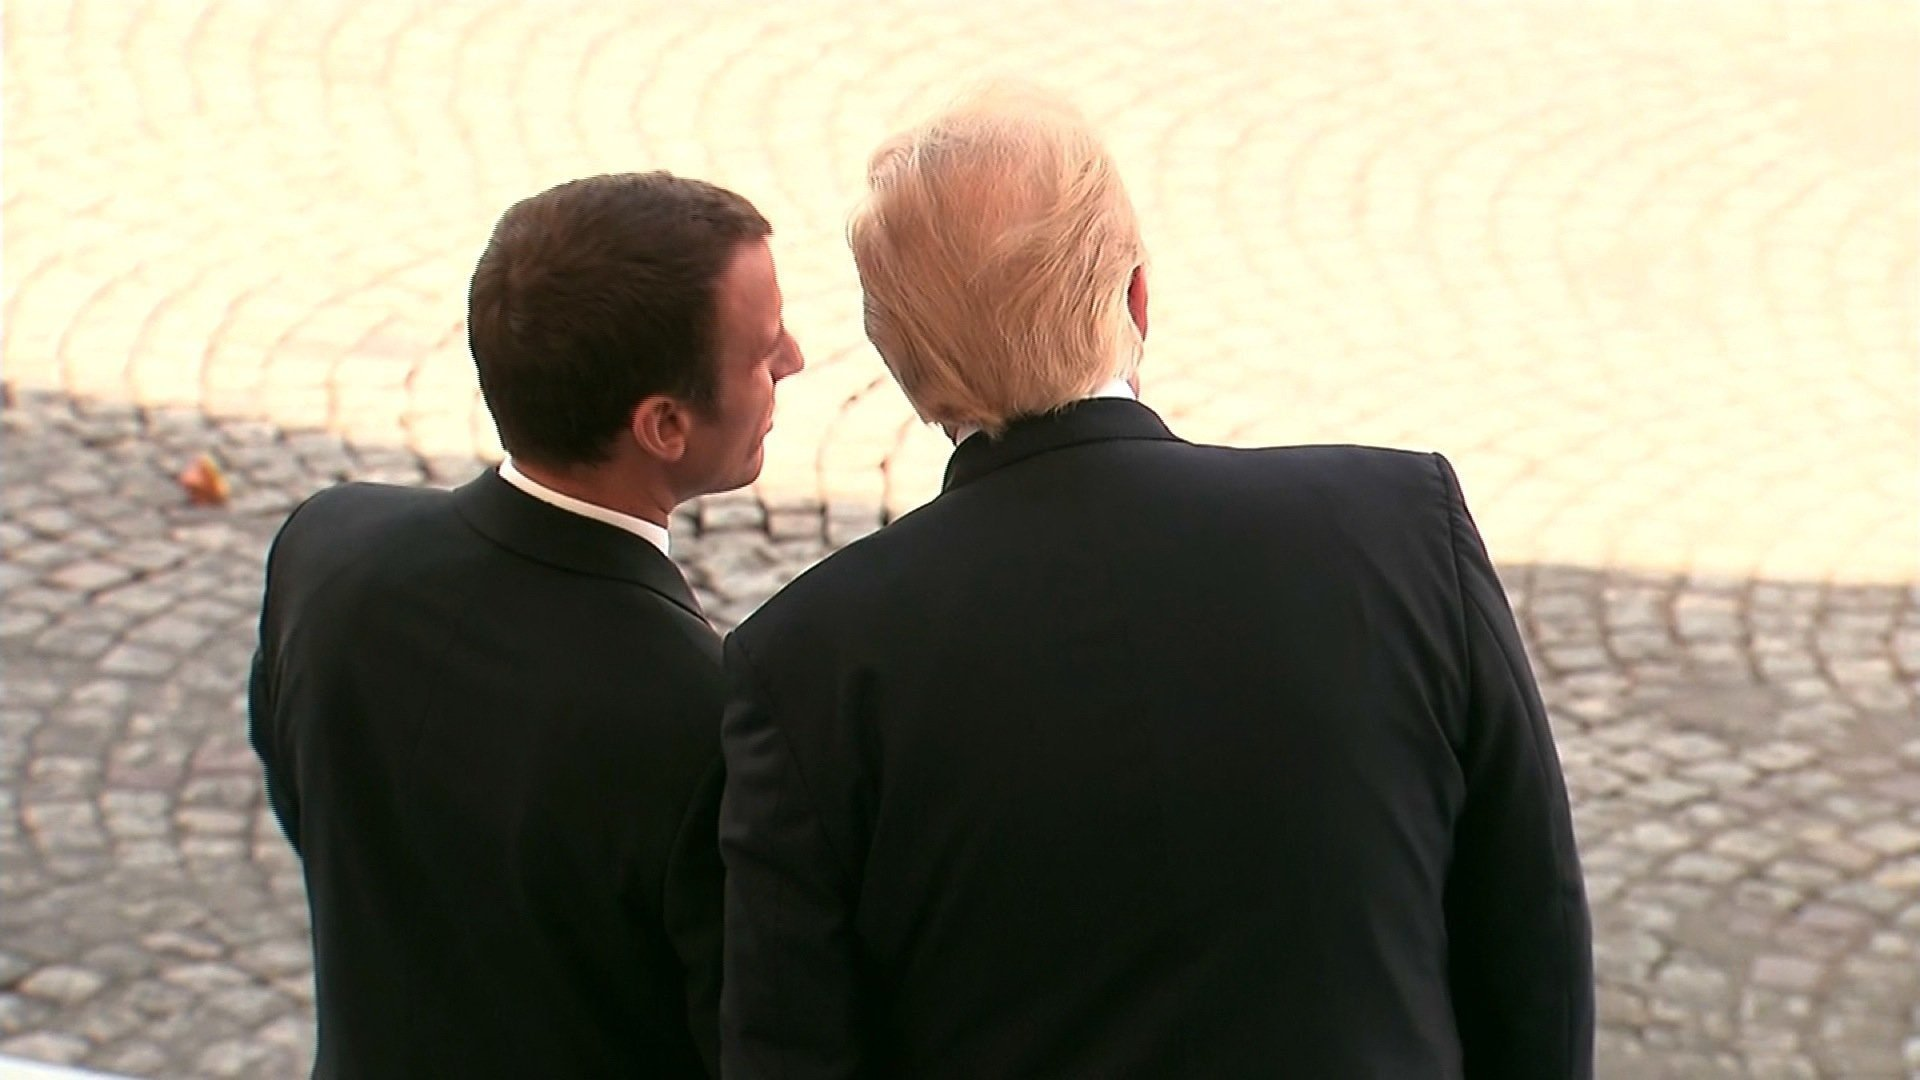 Macron-Trump tussle in new 25-second handshake duel!